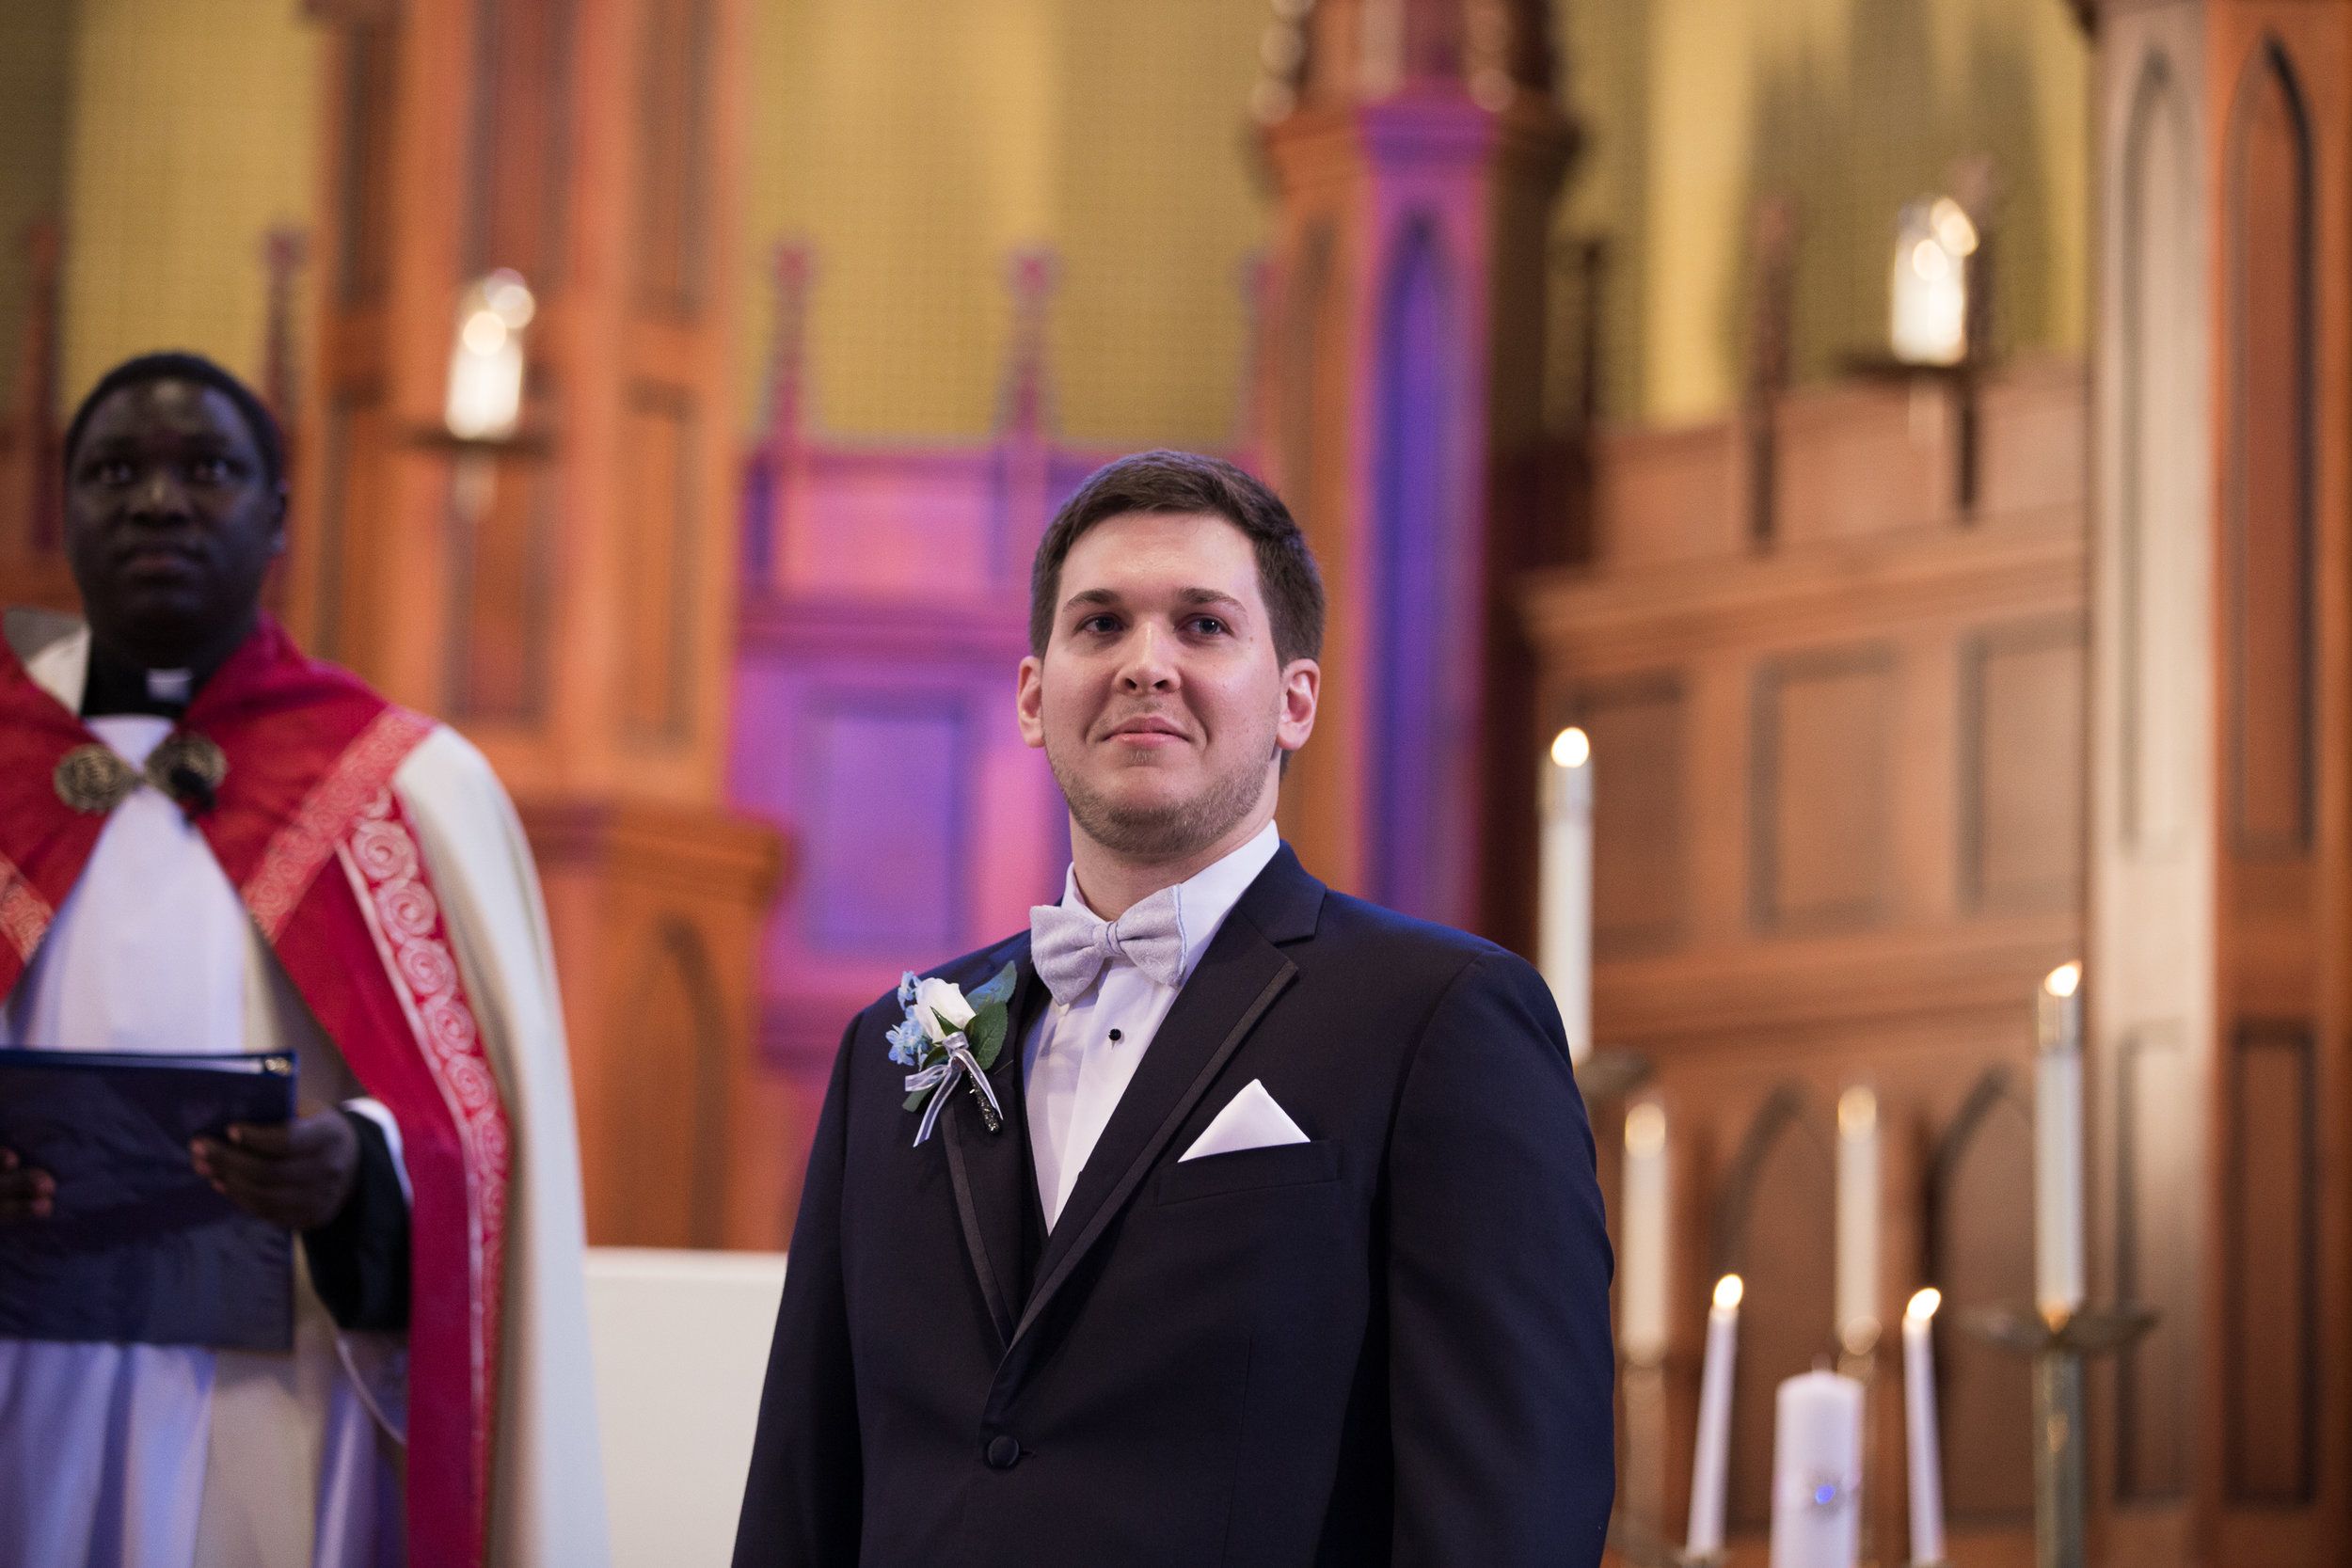 MAryland Wedding Immaculate Conception Church Towson-13.jpg